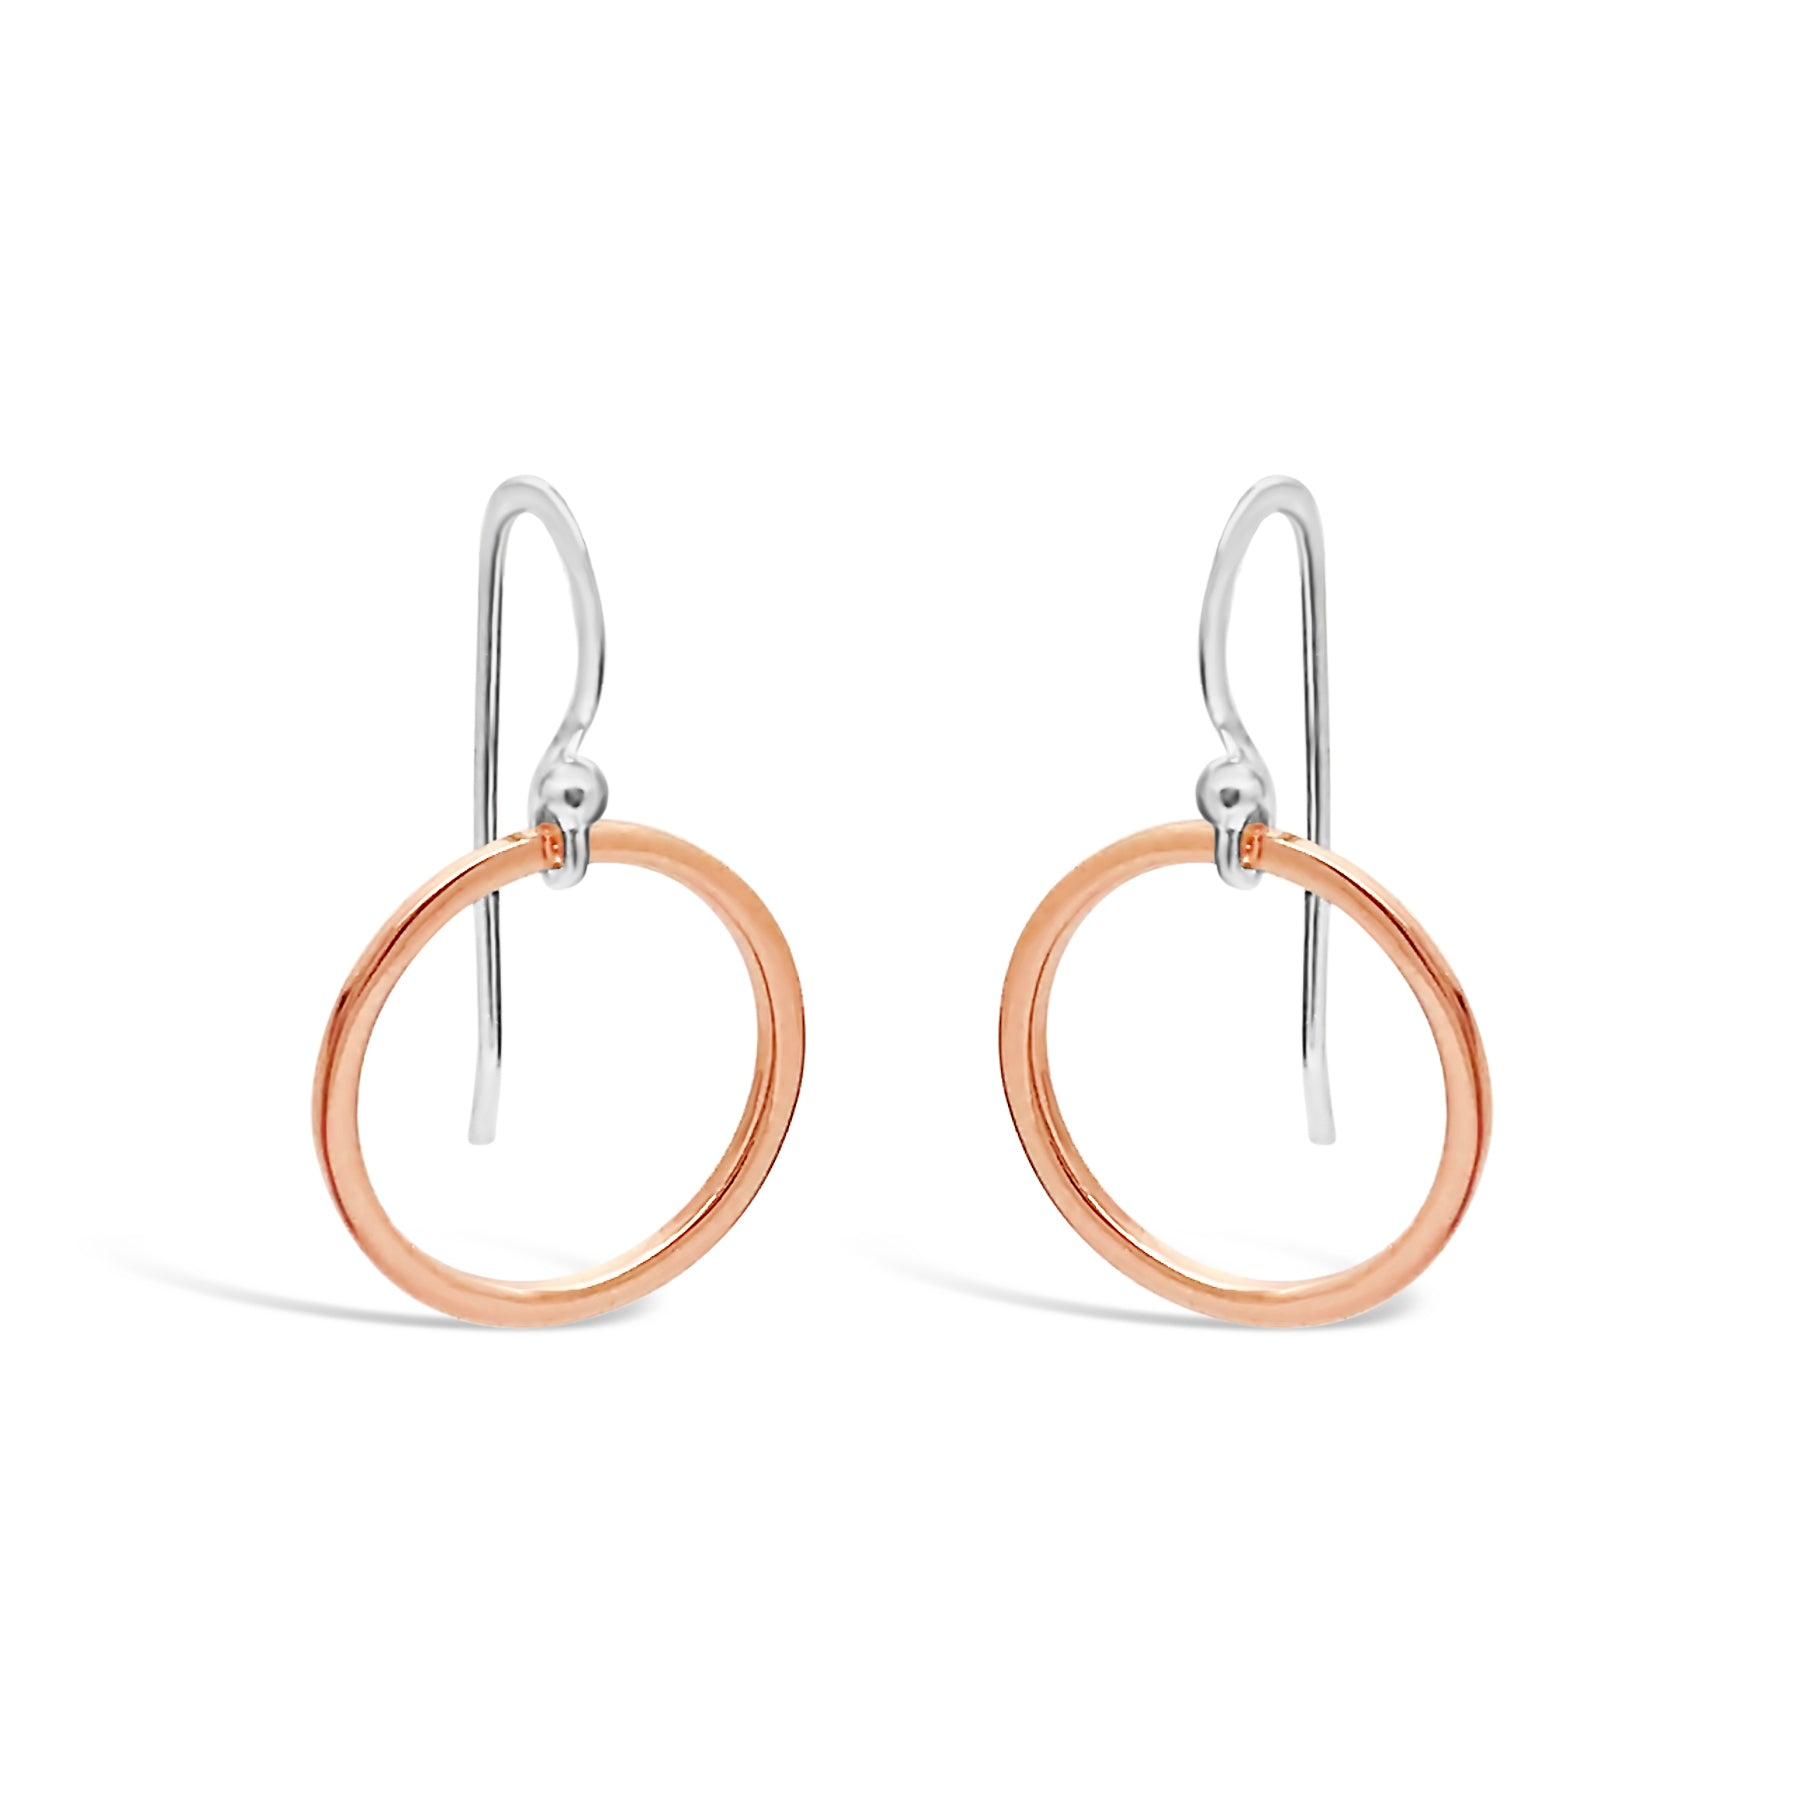 ROSE GOLD CIRCLE DROP EARRINGS